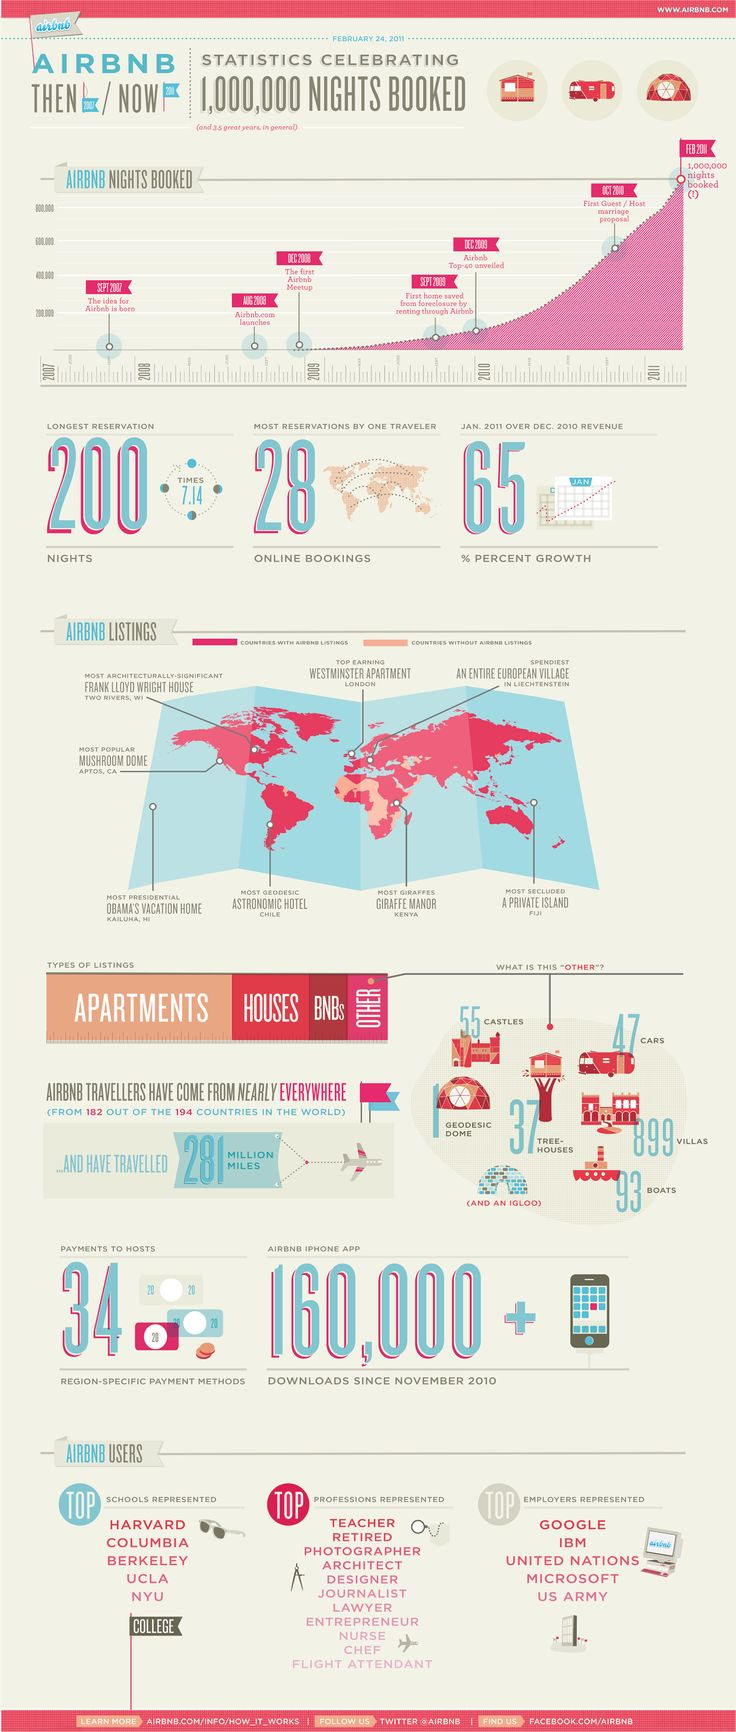 Great infographic by AirBnB, celebrating and explaining their 1,000,000 nights booked. I'm a huge AirBnB fan--have used it twice, with great success, and plan to use it regularly when vacationing.